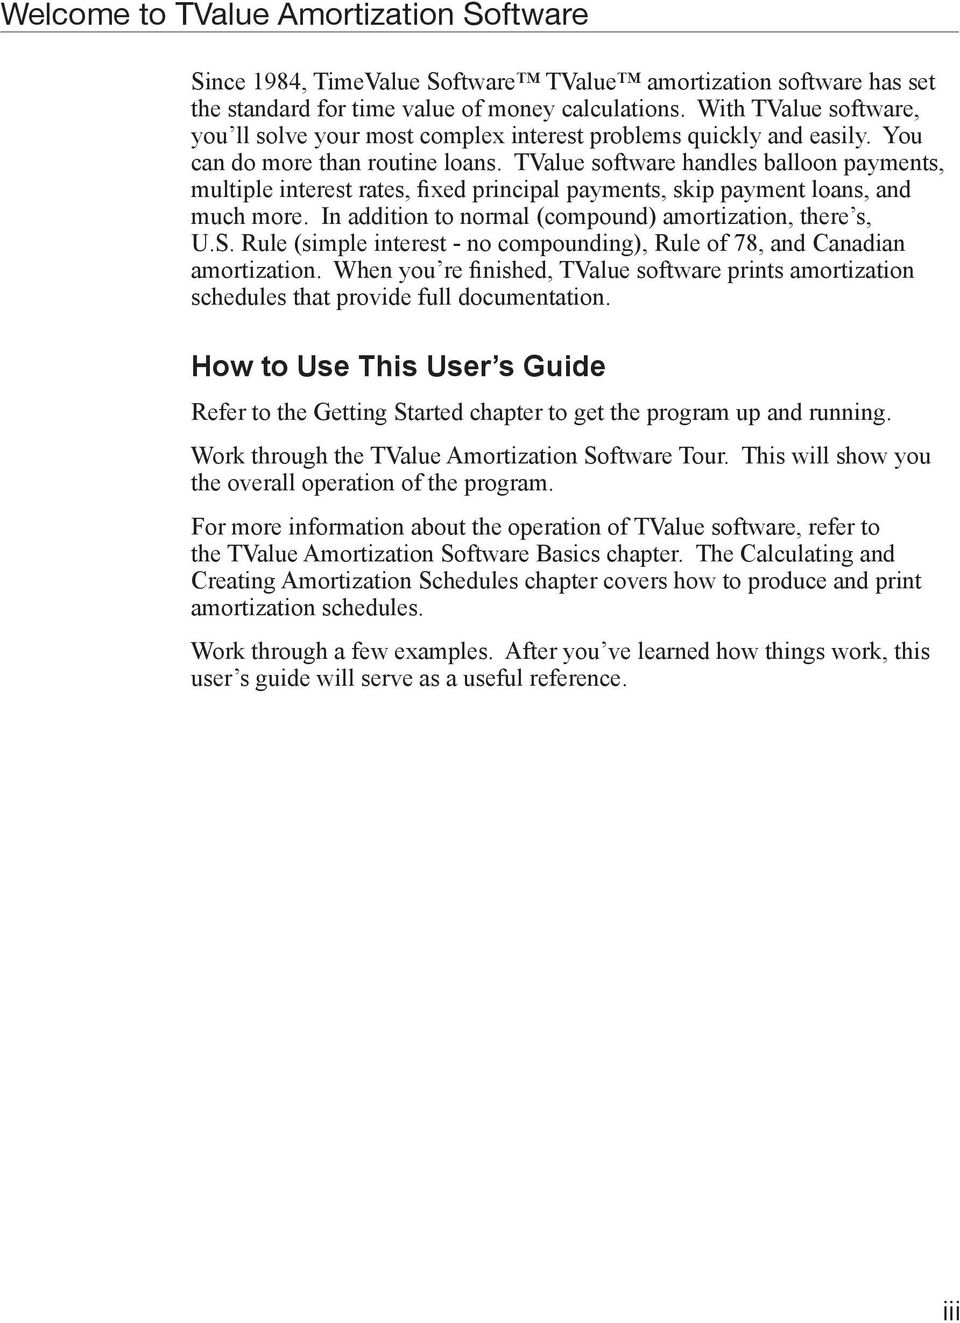 timevalue software amortization software version 5 user s guide pdf